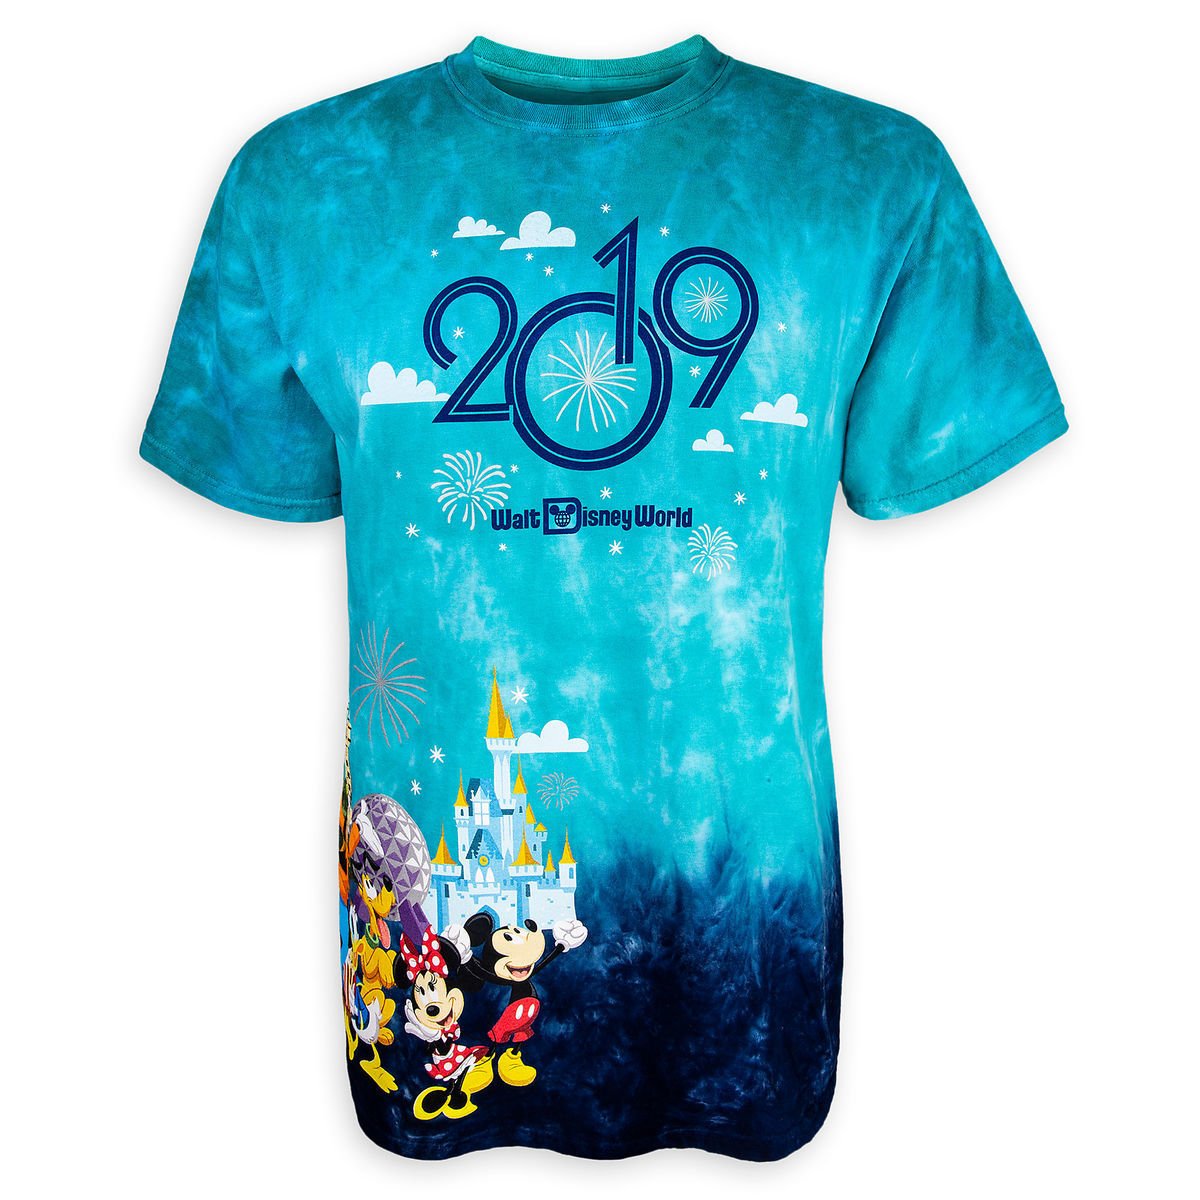 1e9016775e7 Disney Adult Shirt - 2019 Mickey Mouse and Friends - Tie-Dye